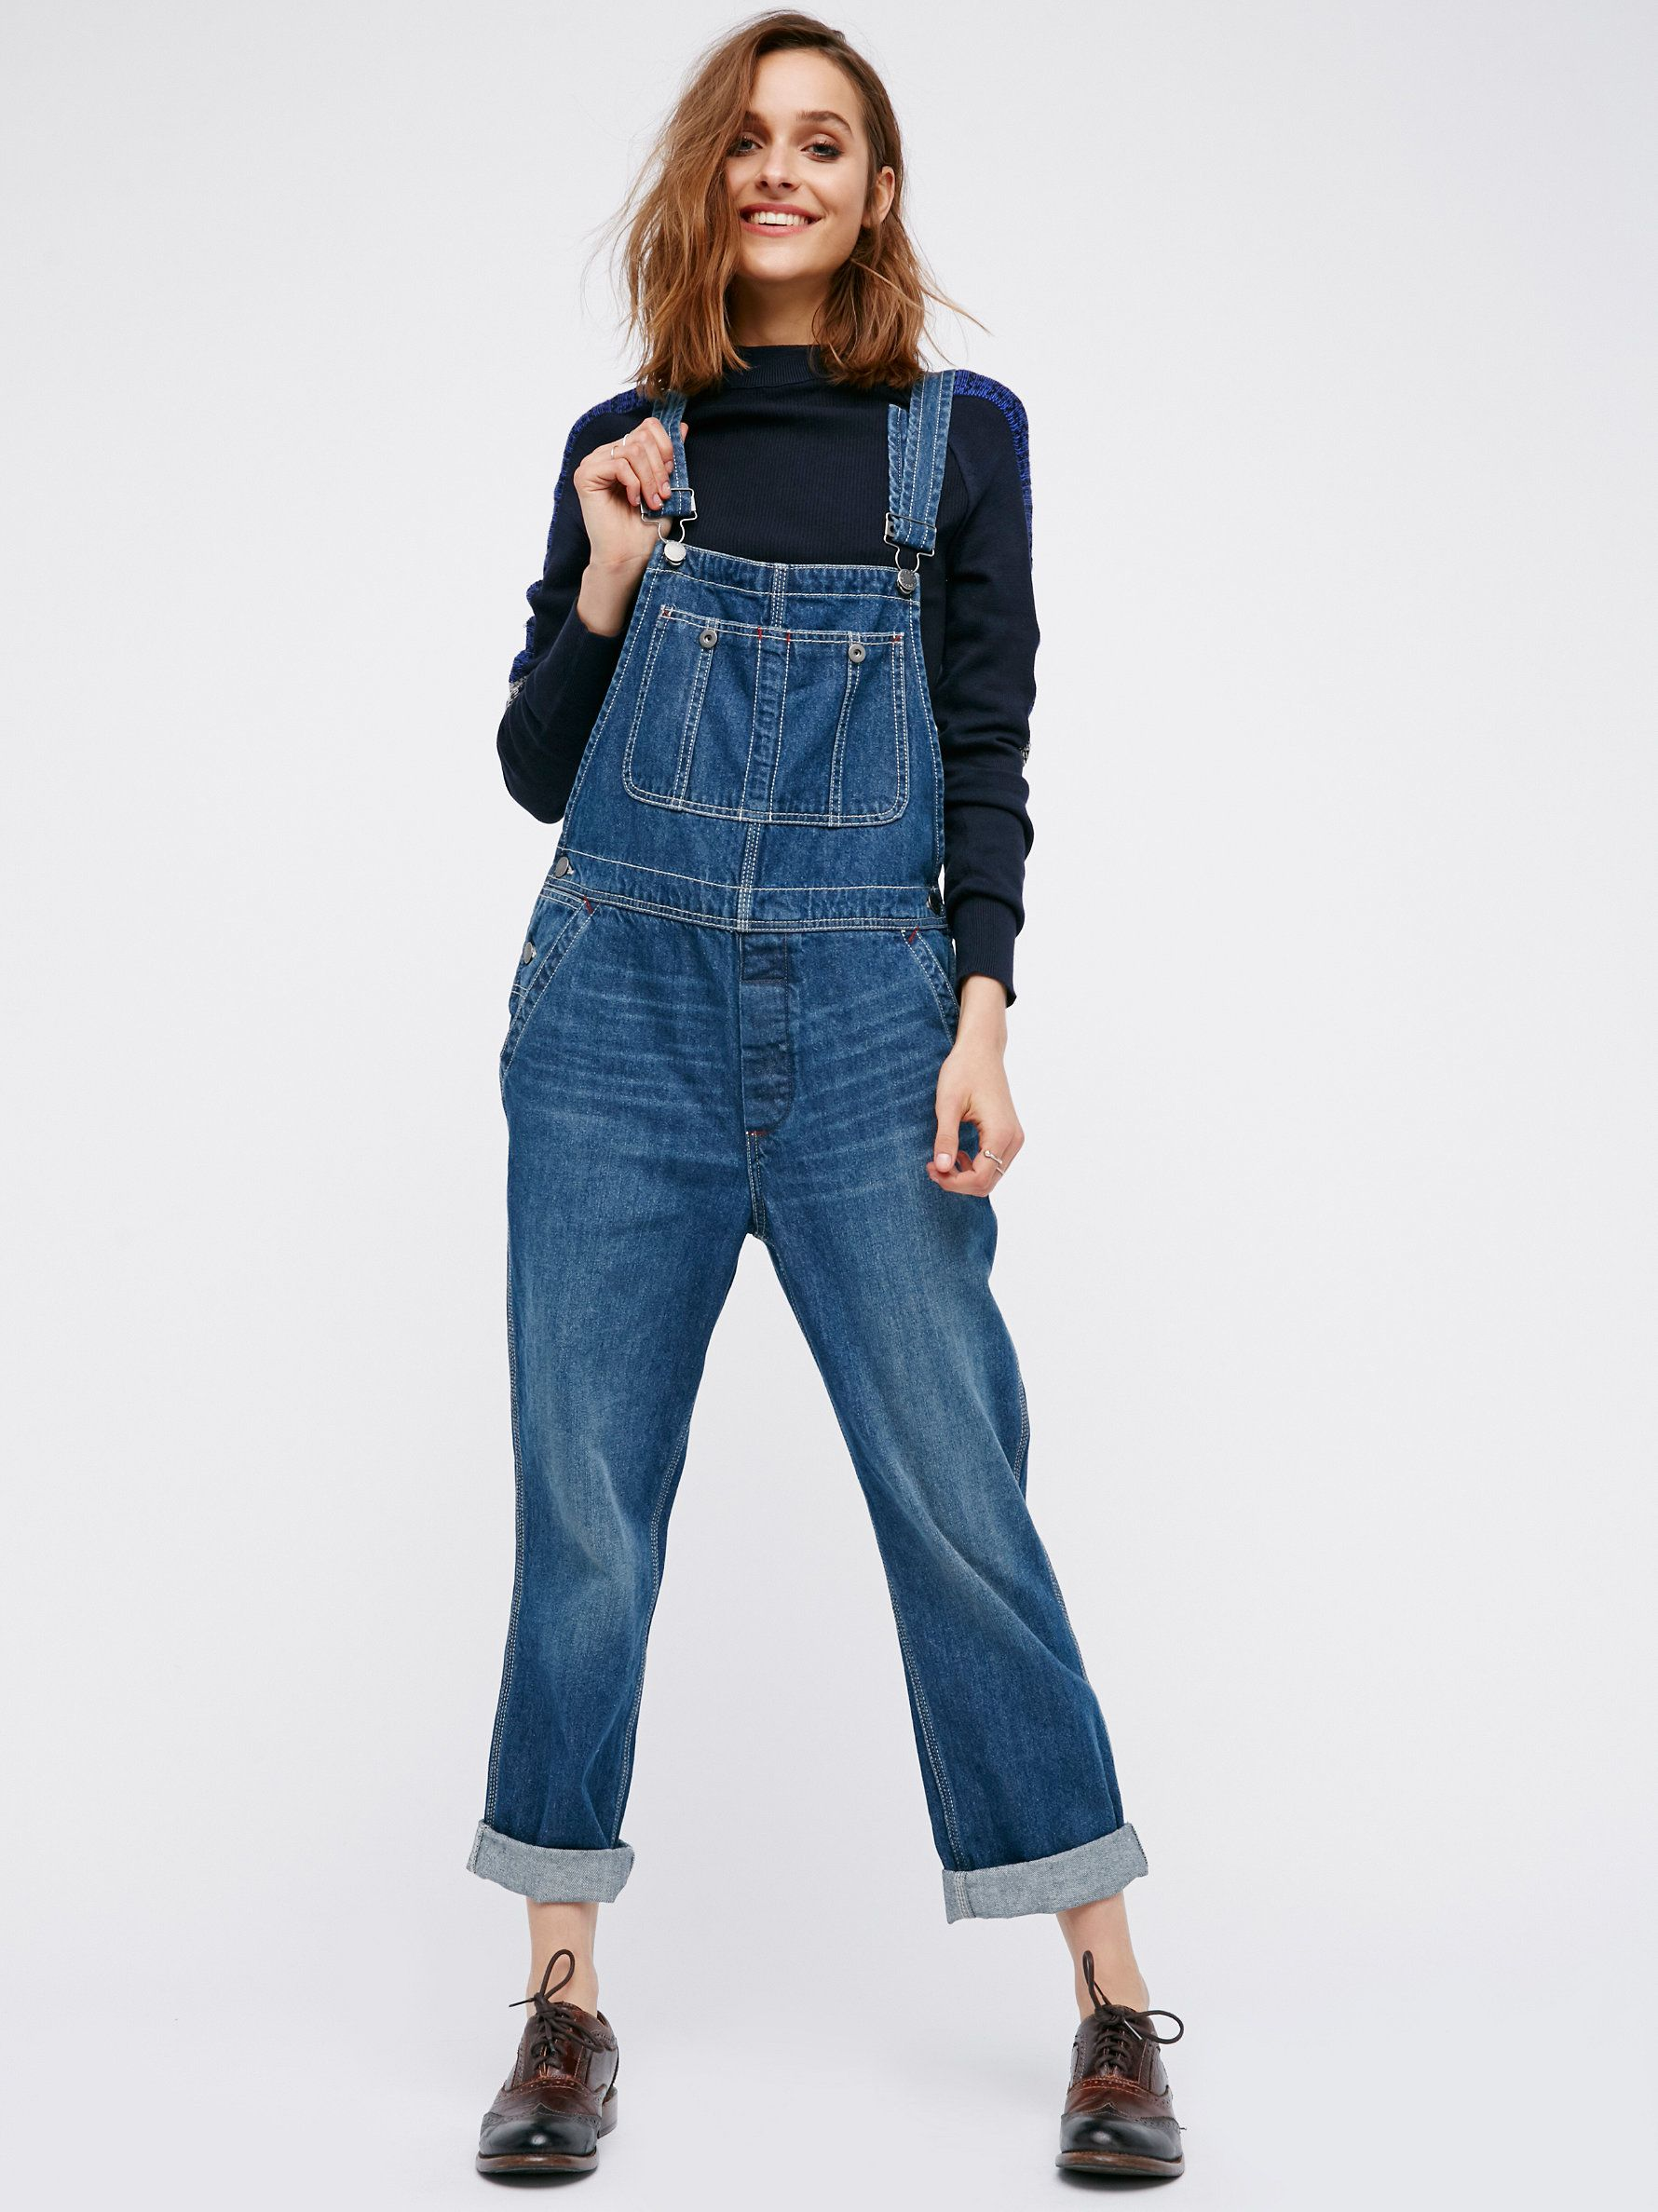 58e28e794 The Boyfriend Overall | Classic denim overalls in a slouchy boyfriend fit  with double pockets on the bib and snap closures. * Rigid, no-stretch  fabric.